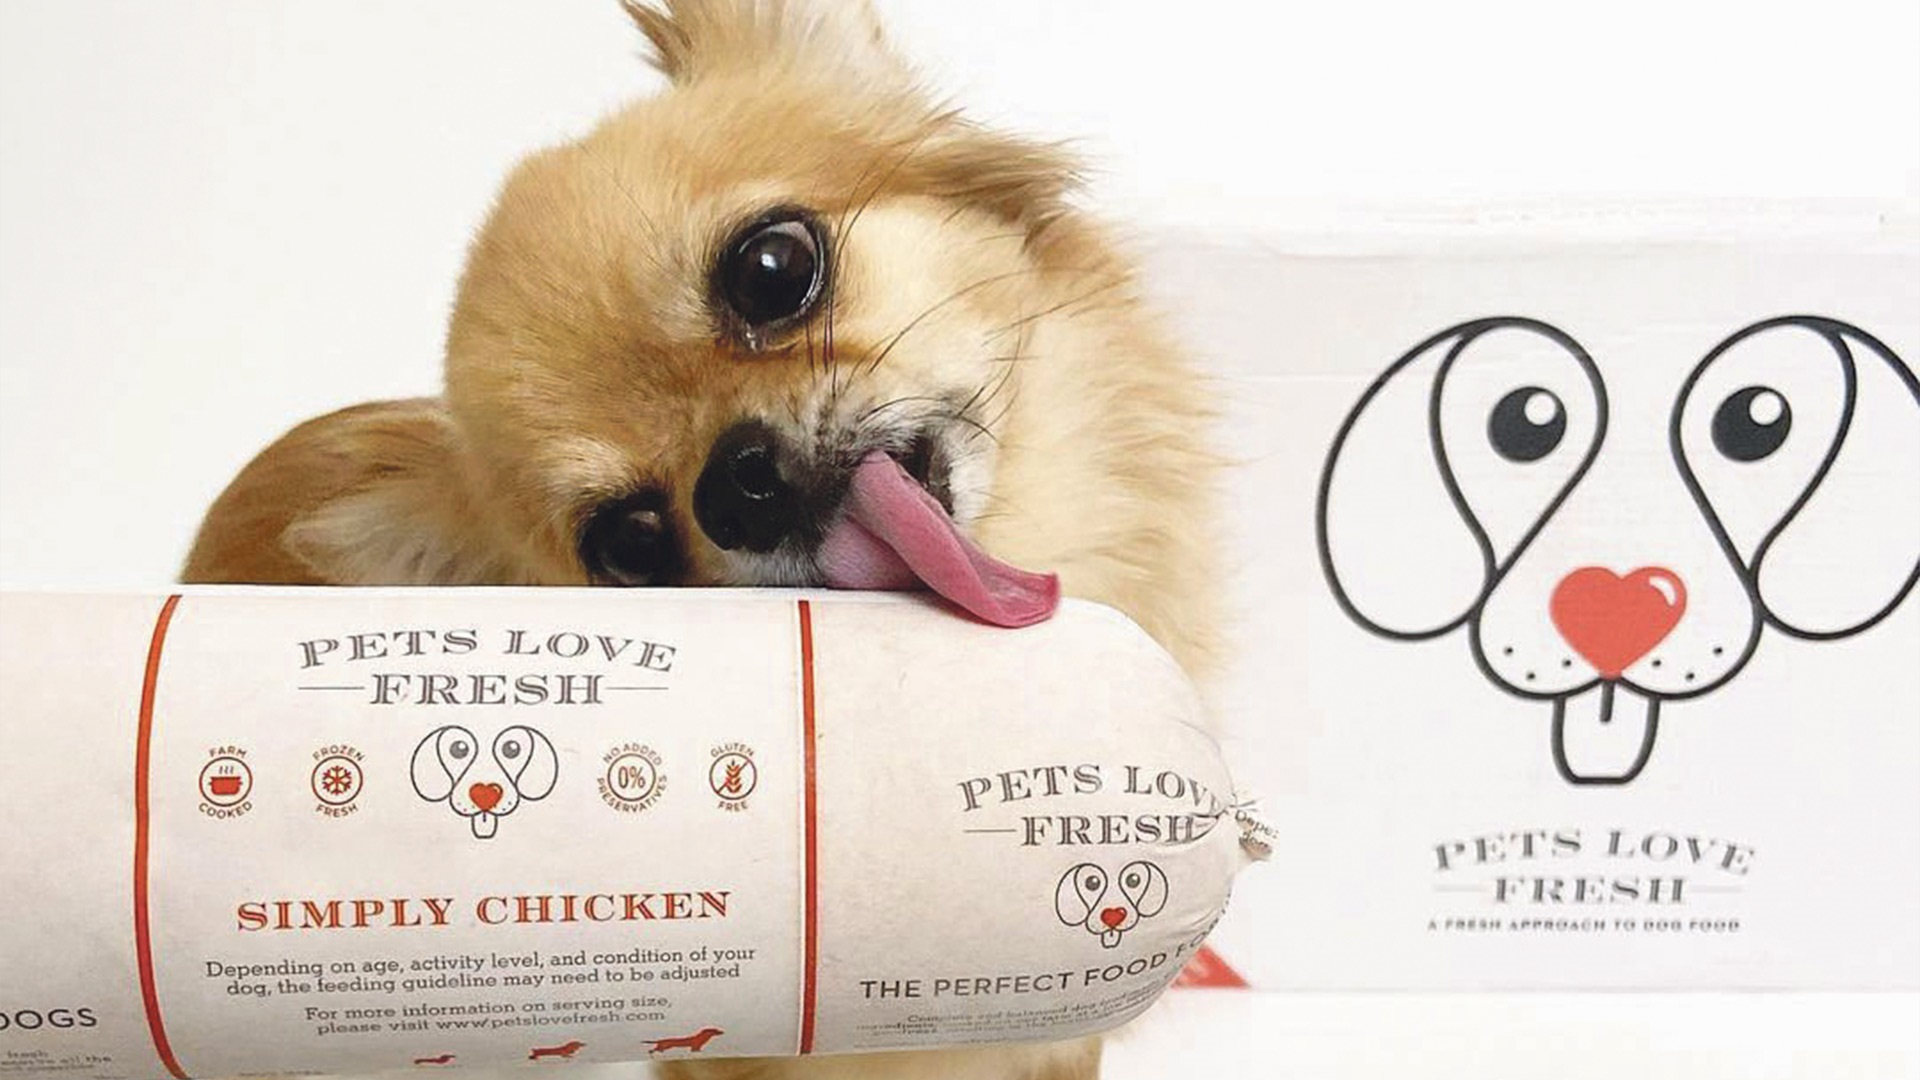 Win six months' worth of dog food from Pets Love Fresh Worth £250!